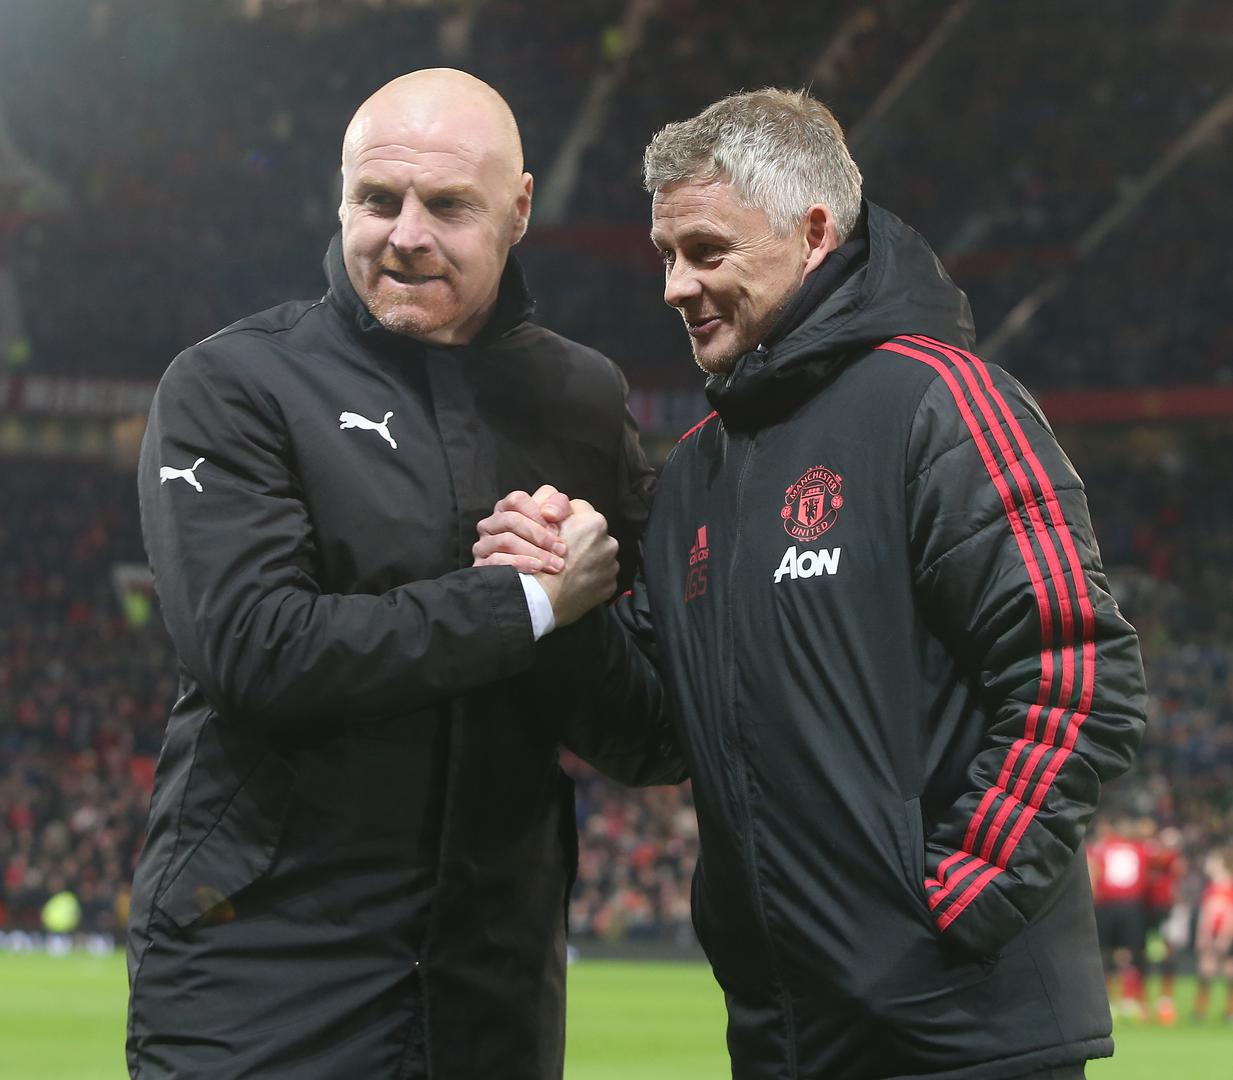 Burnley manager Sean Dyche greets Manchester United boss Ole Gunnar Solskjaer at Old Trafford.